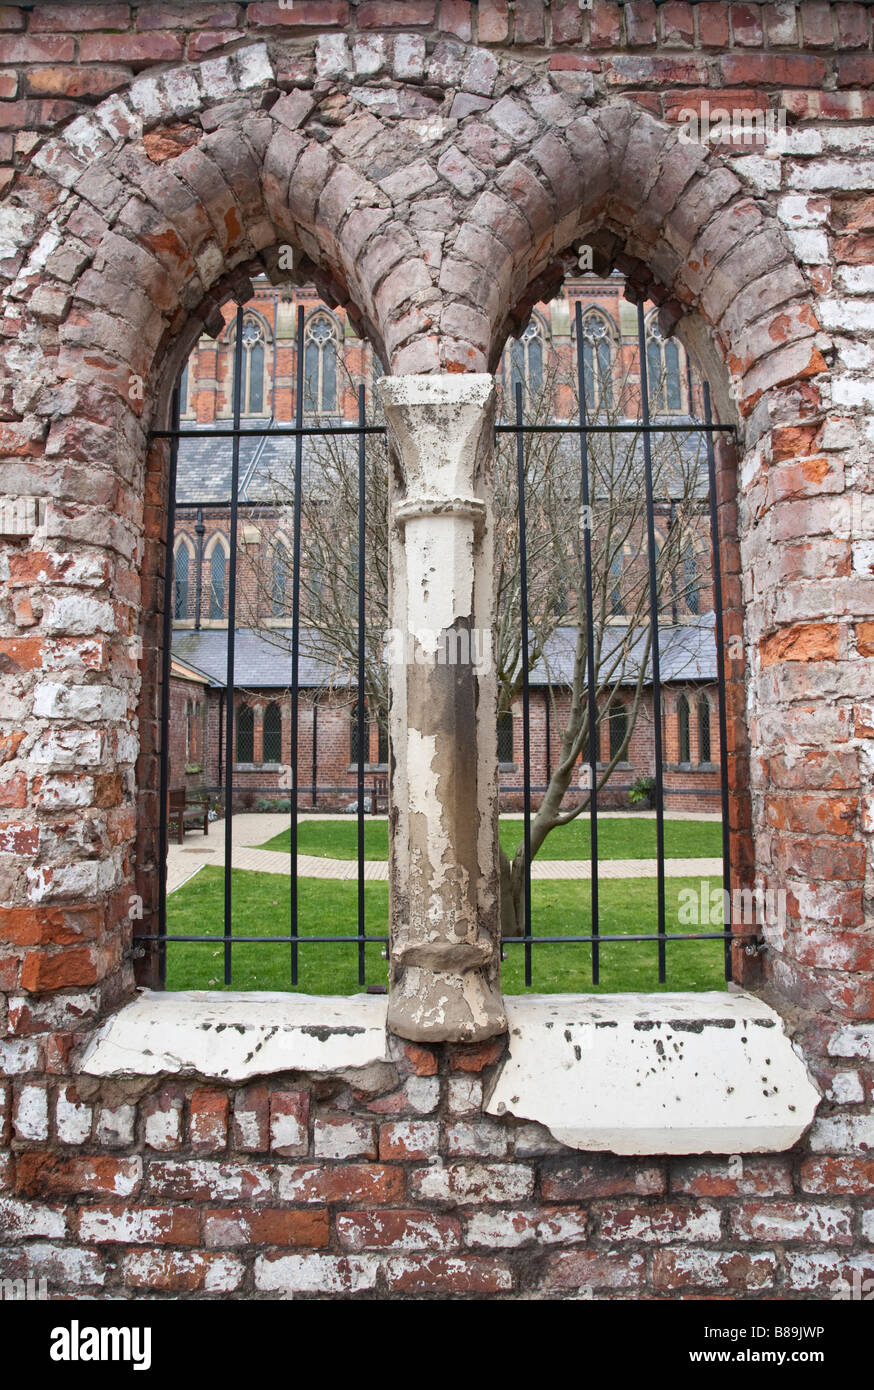 Looking through windows into the cloisters. Gorton Monastery, Gorton, Greater Manchester, United Kingdom. - Stock Image